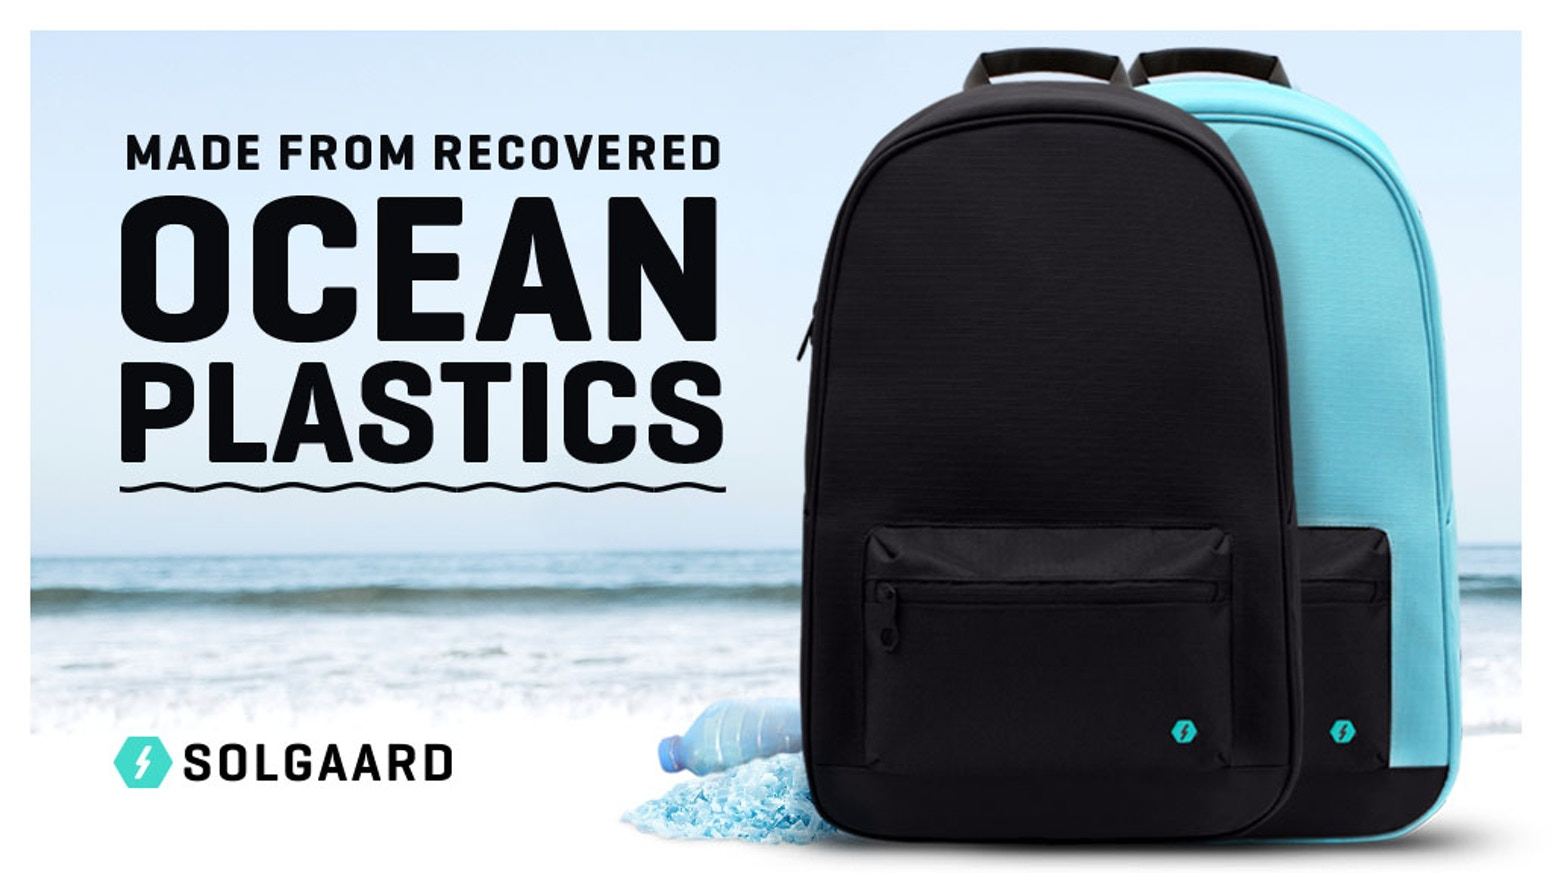 A backpack made from recycled plastic recovered from the ocean. Designed for everyday carry, including laptop and other tech gear.